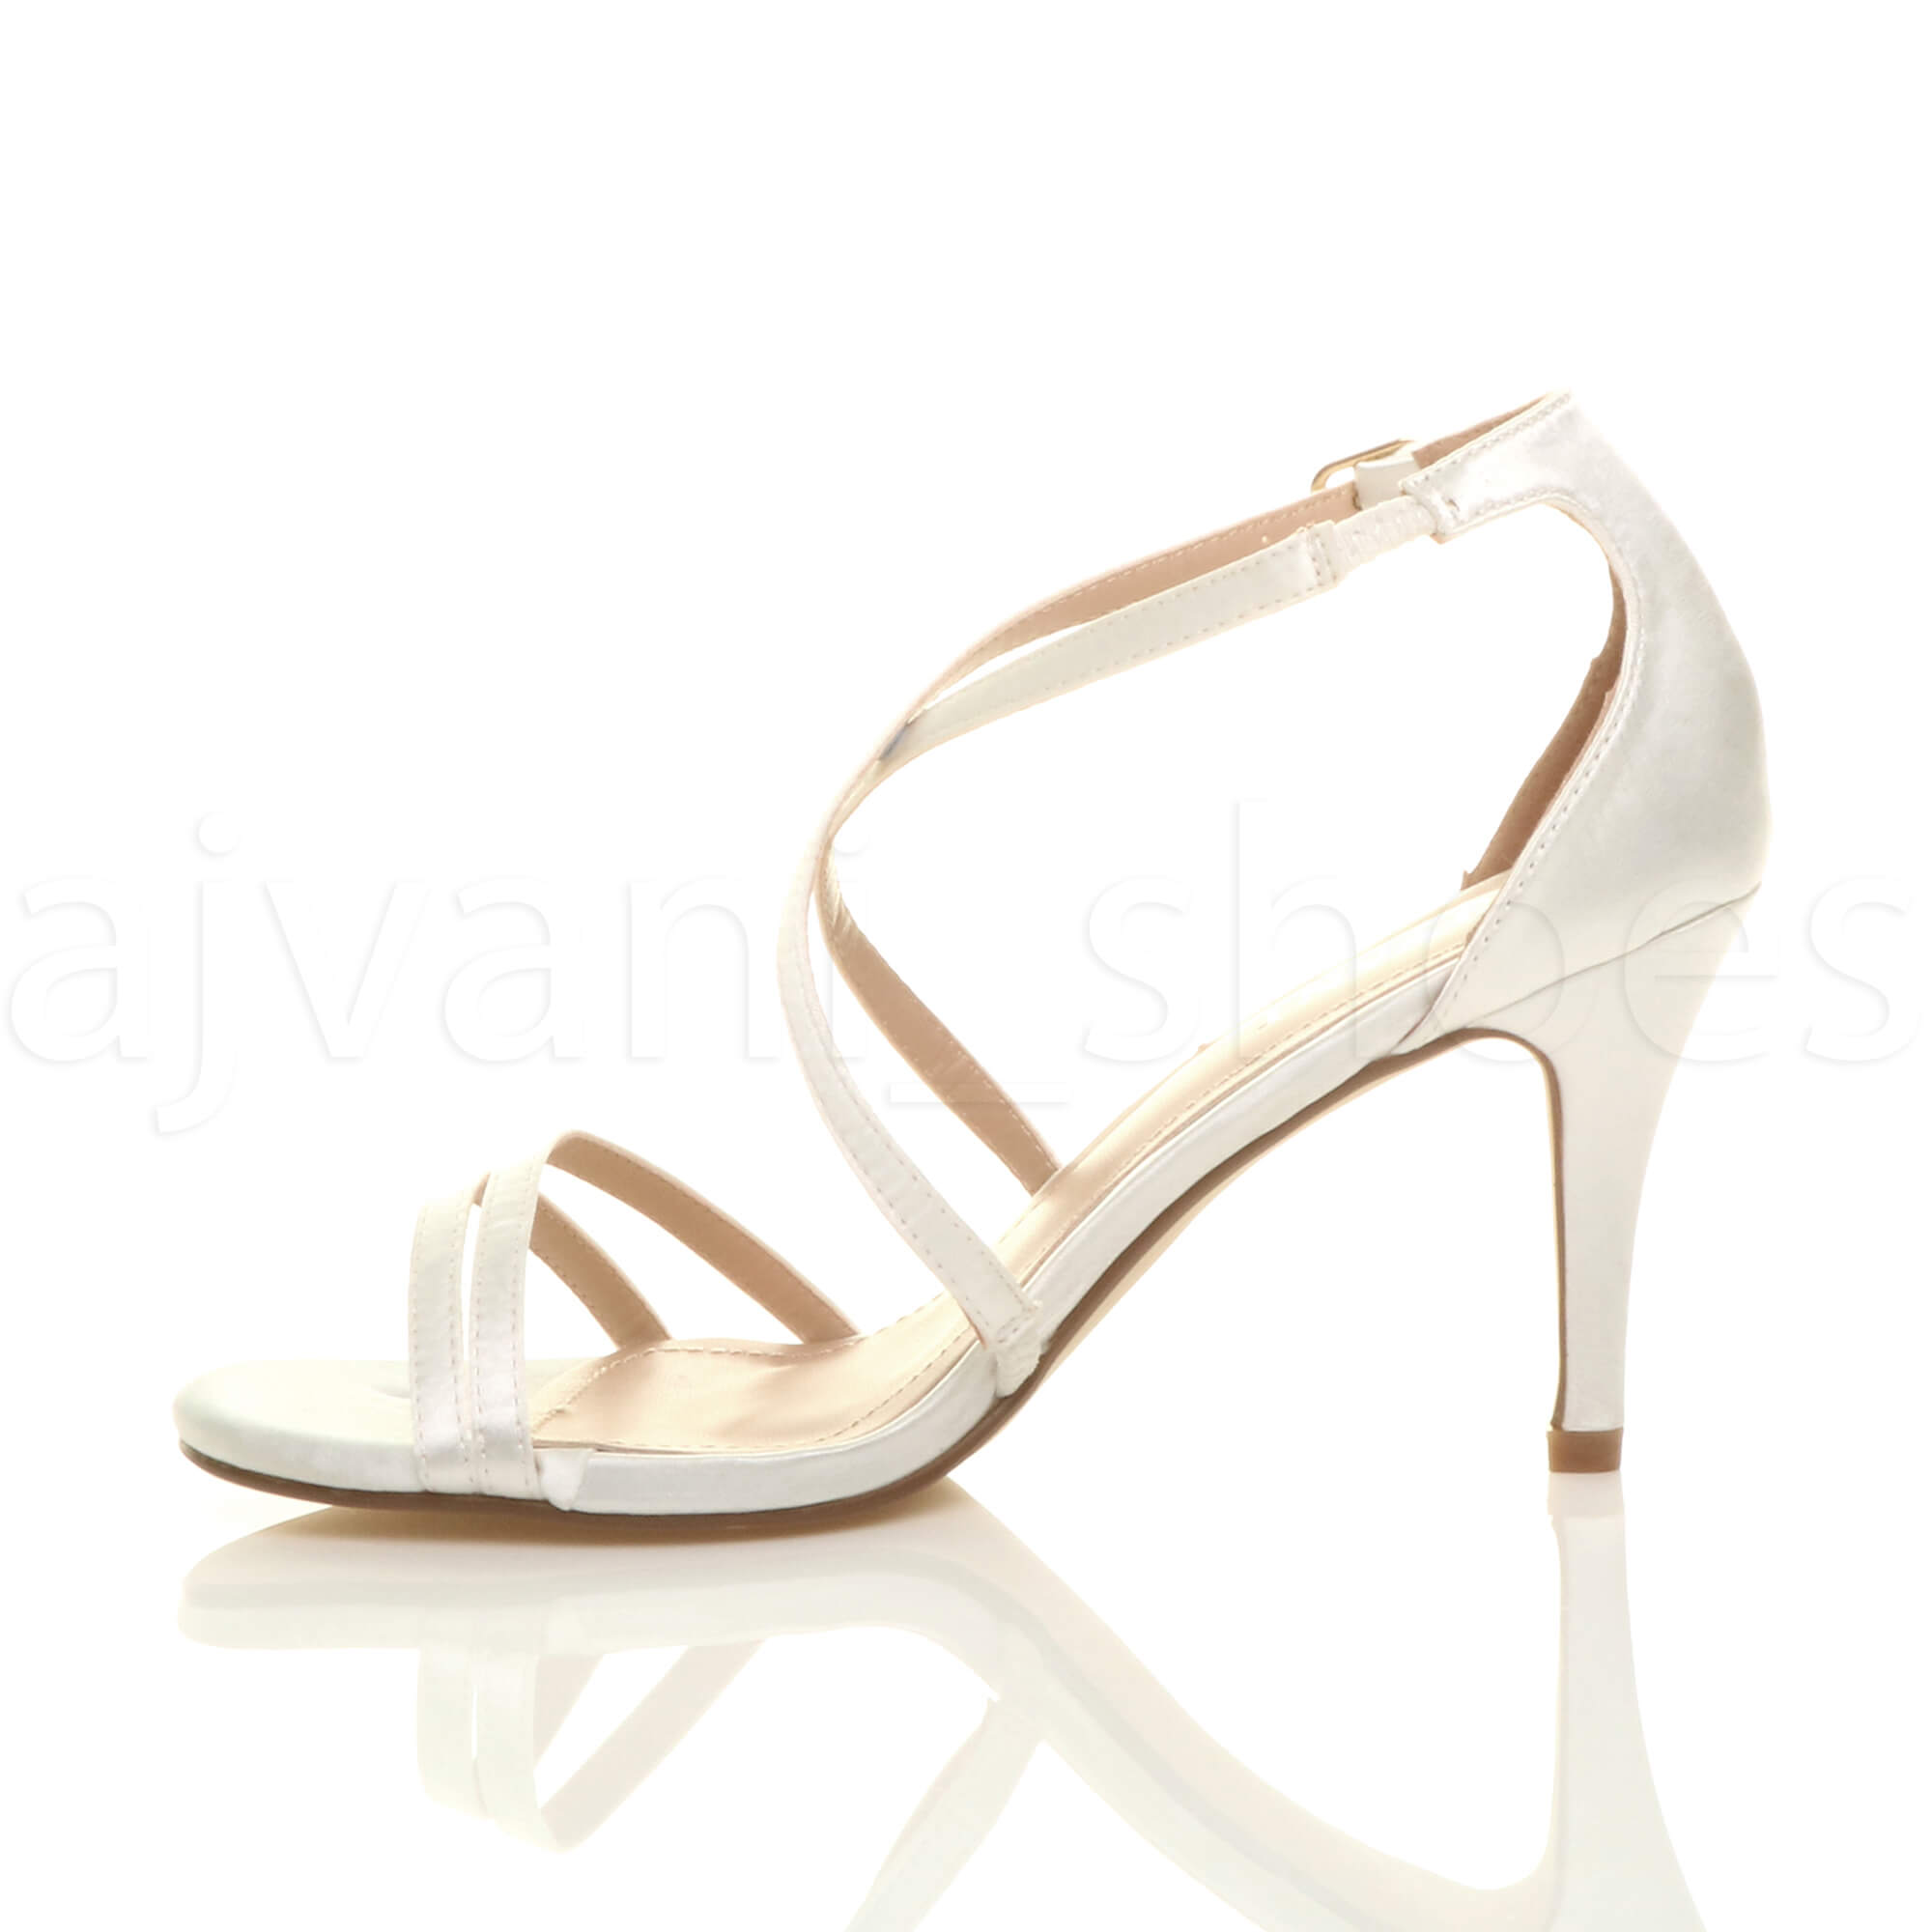 WOMENS-LADIES-MID-HIGH-HEEL-STRAPPY-CROSSOVER-WEDDING-PROM-SANDALS-SHOES-SIZE thumbnail 67